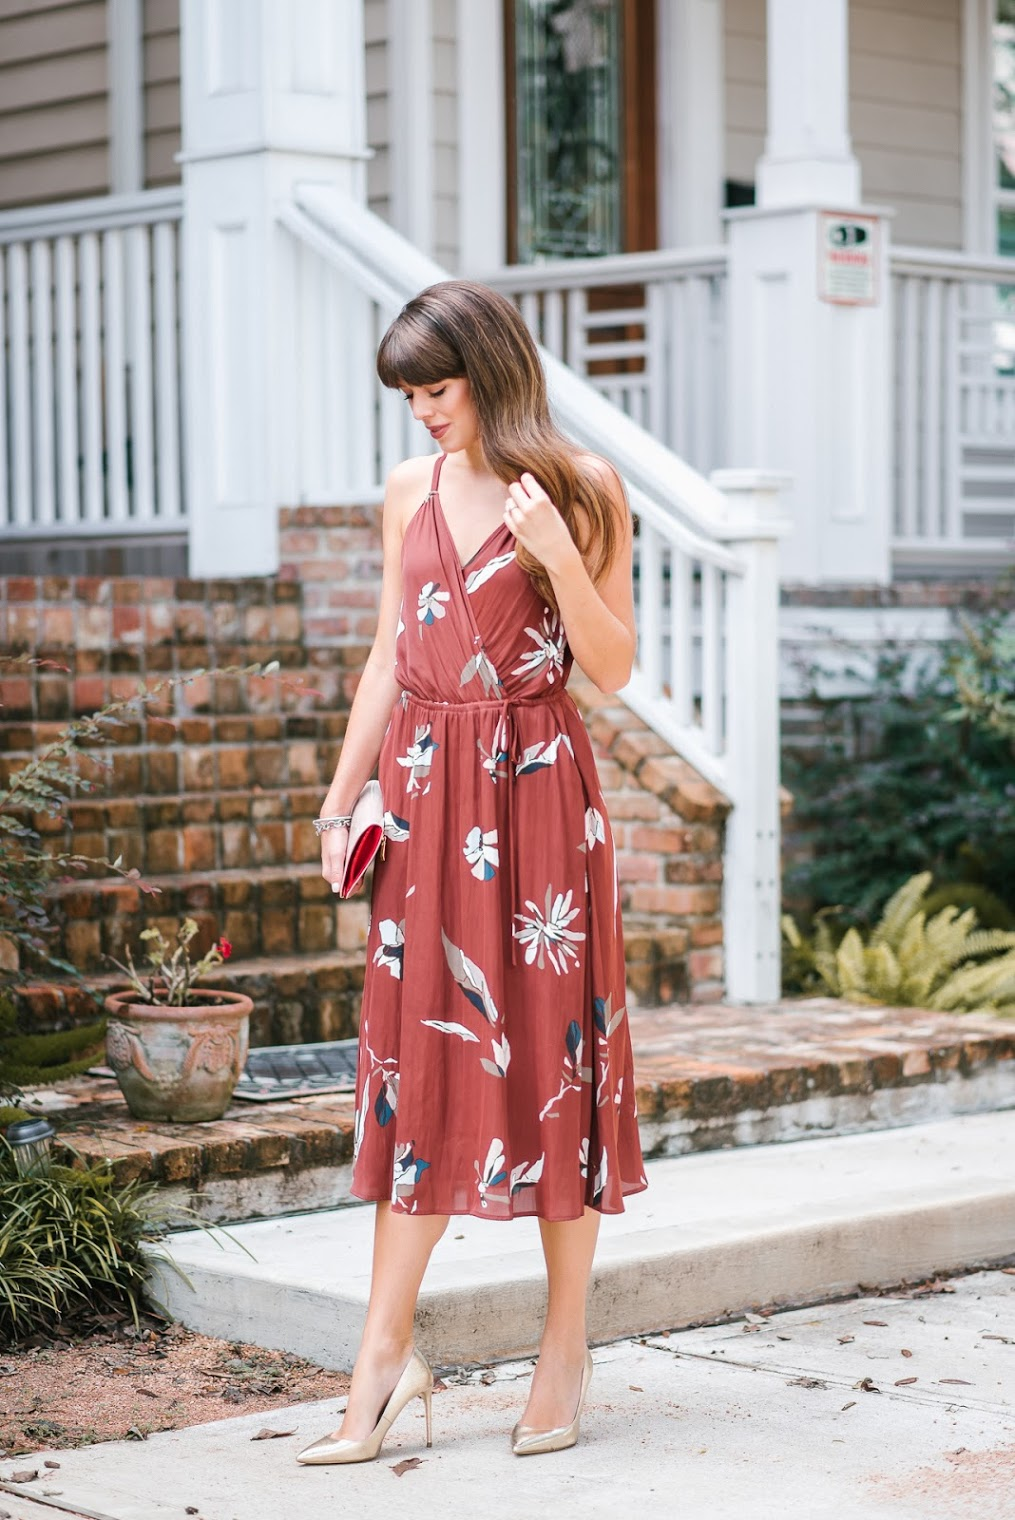 Fall Wedding Guest Dress - Tayler Malott